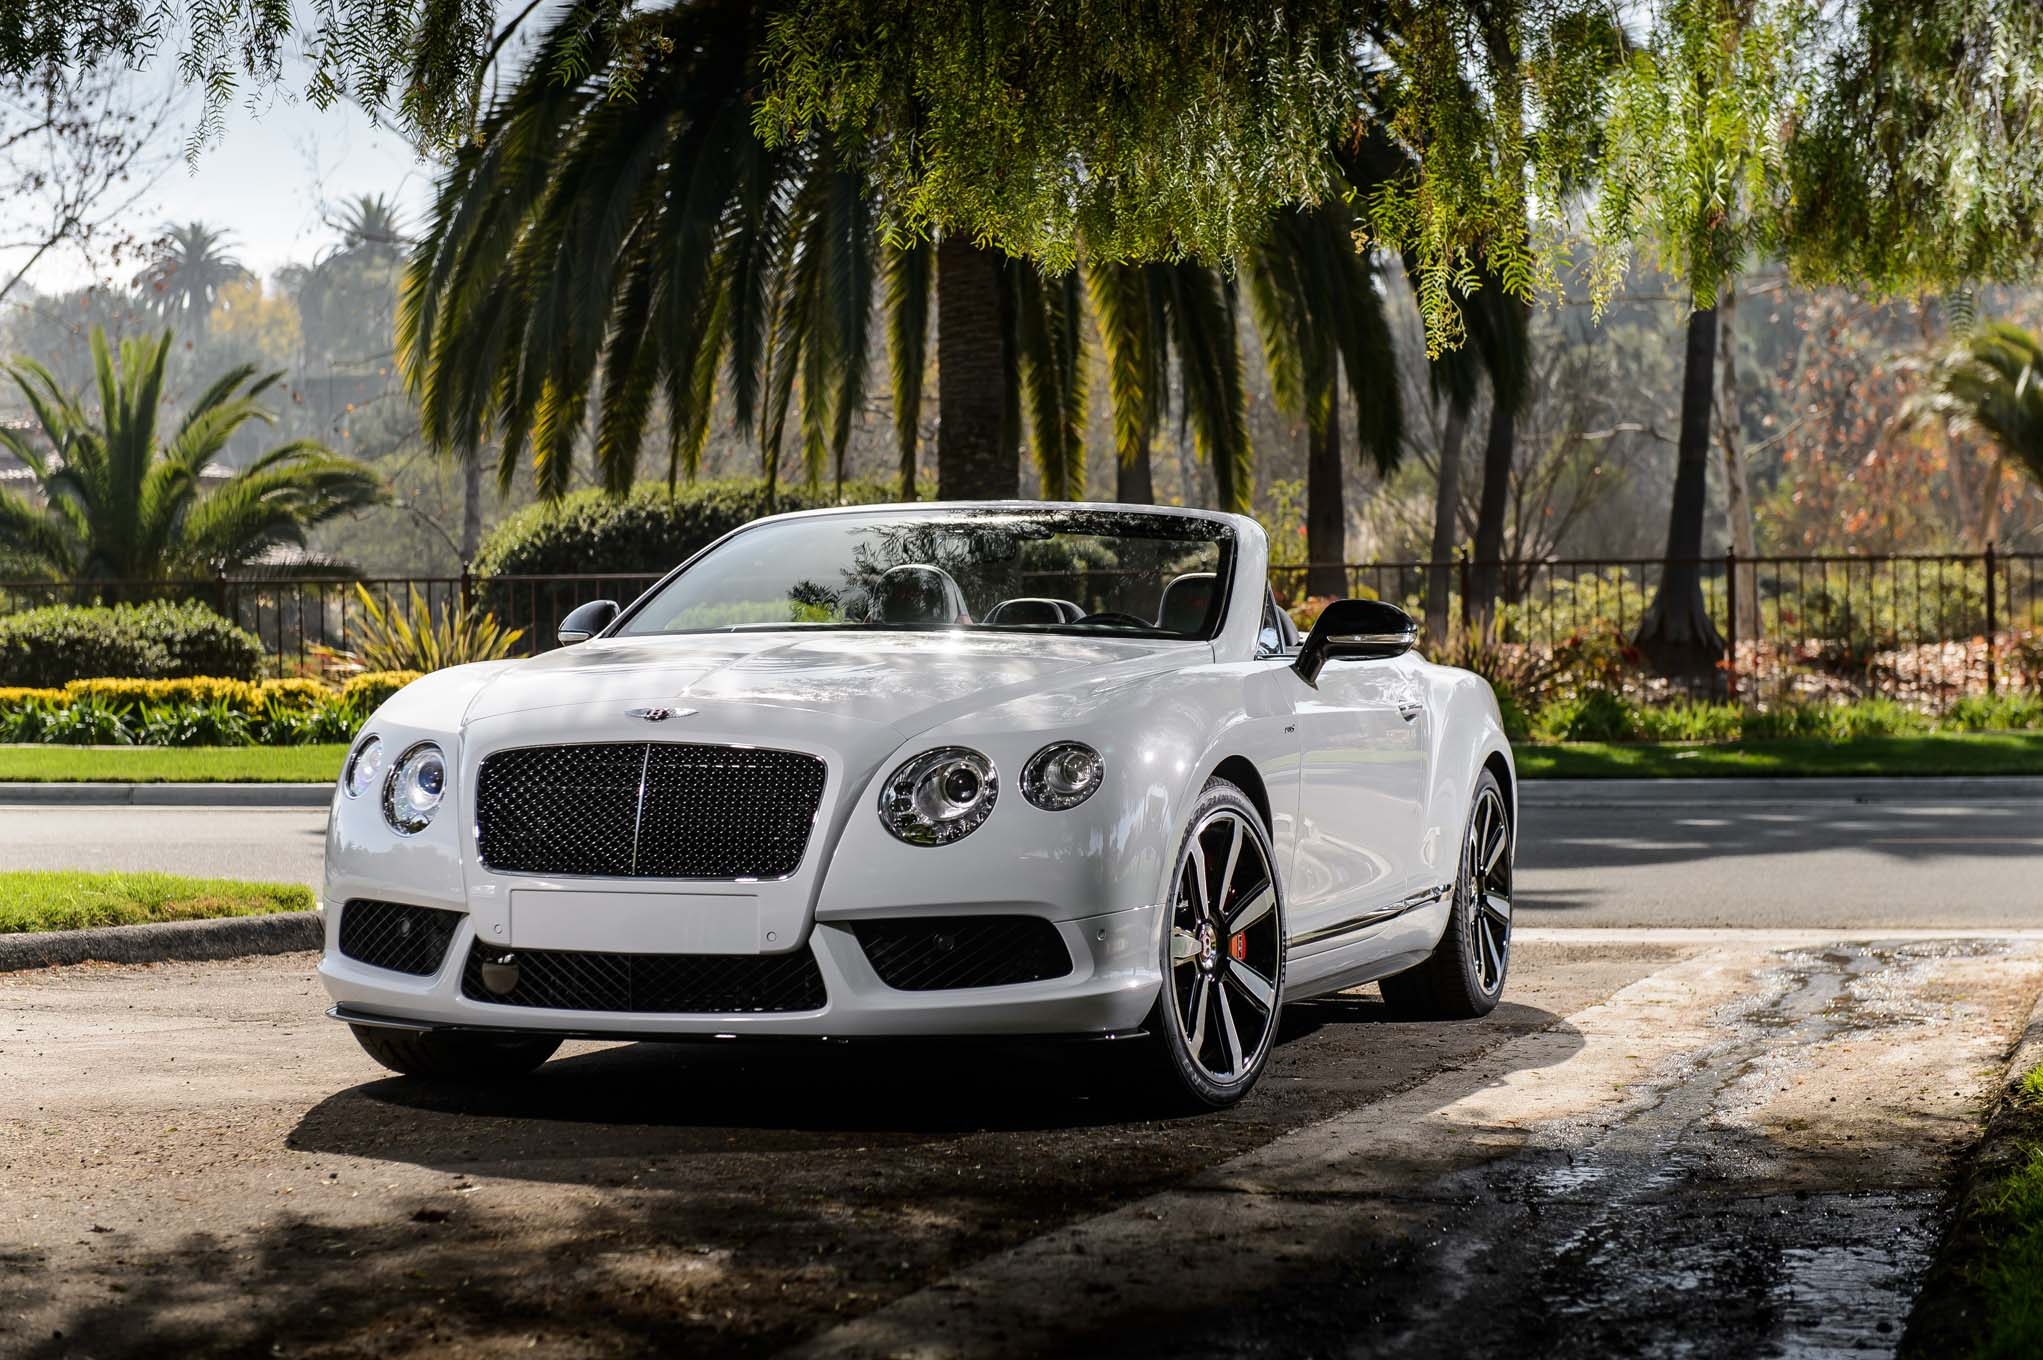 2014 Bentley Continental Gt V8 S Review Automobile Magazine